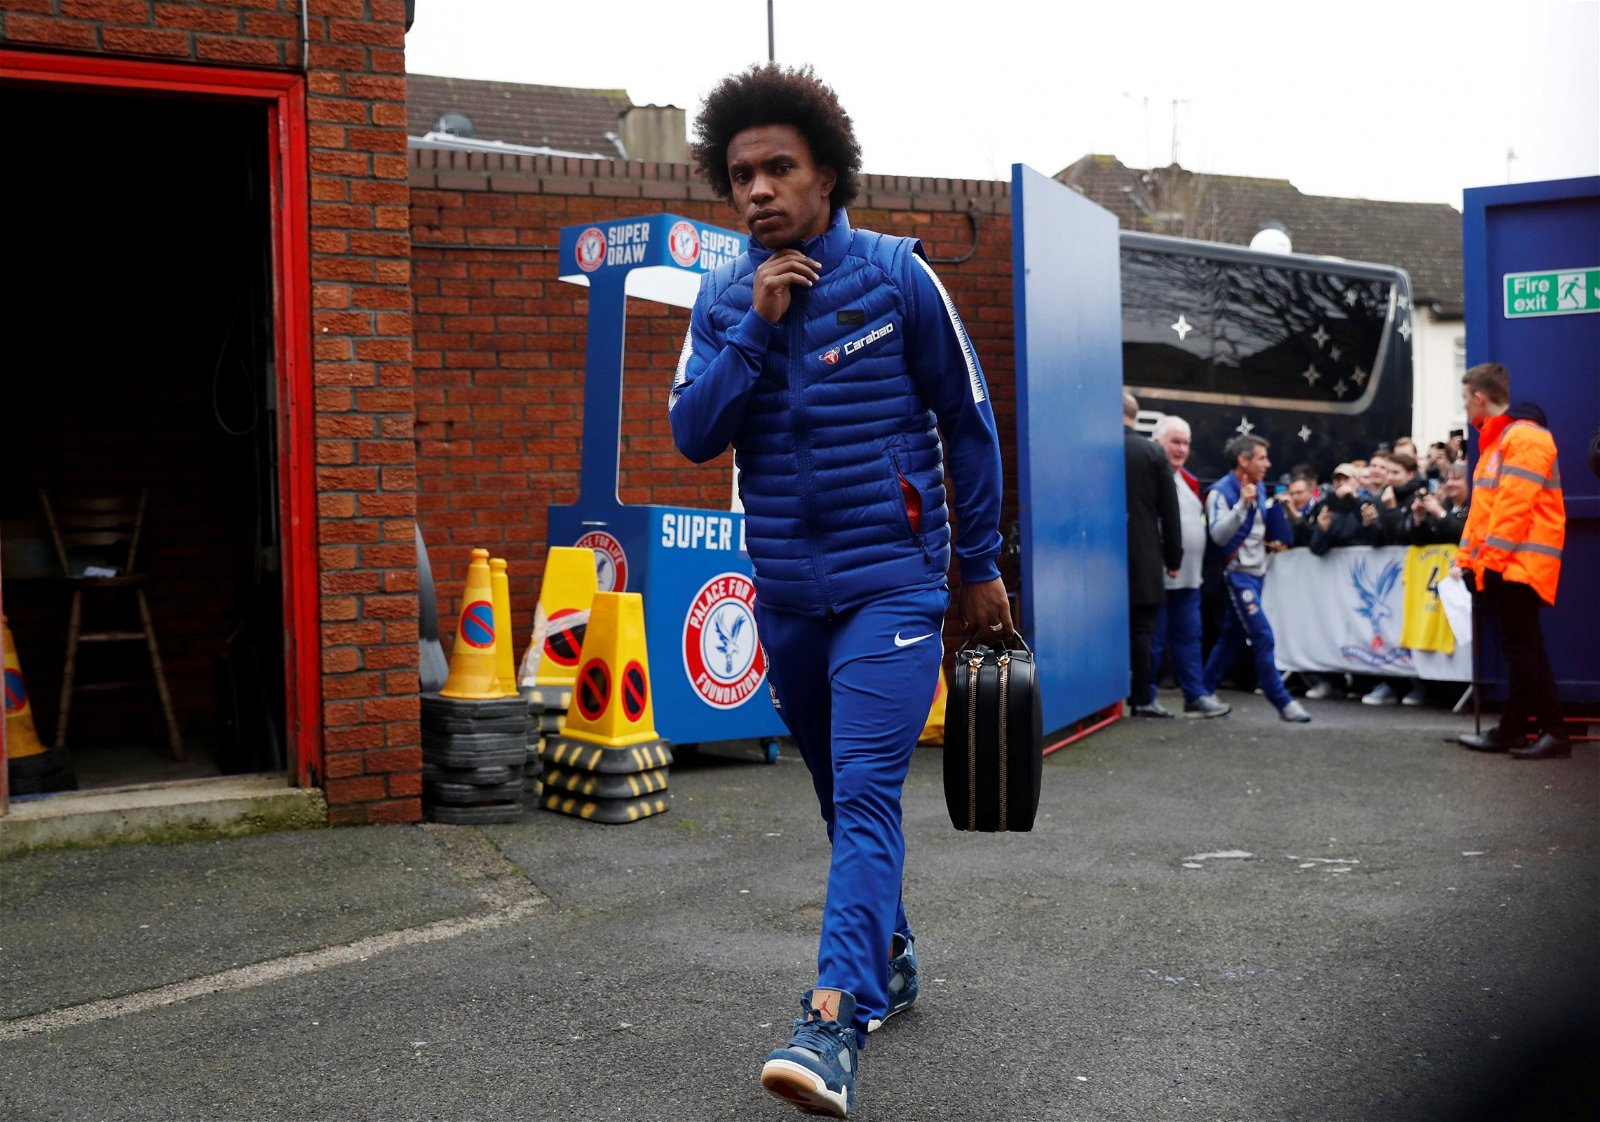 Chelseas Willian arrives at Selhurst Park before the Crystal Palace match - Sarri-ball takes off, farewell Willian: Potential consequences if attacker commits to Chelsea